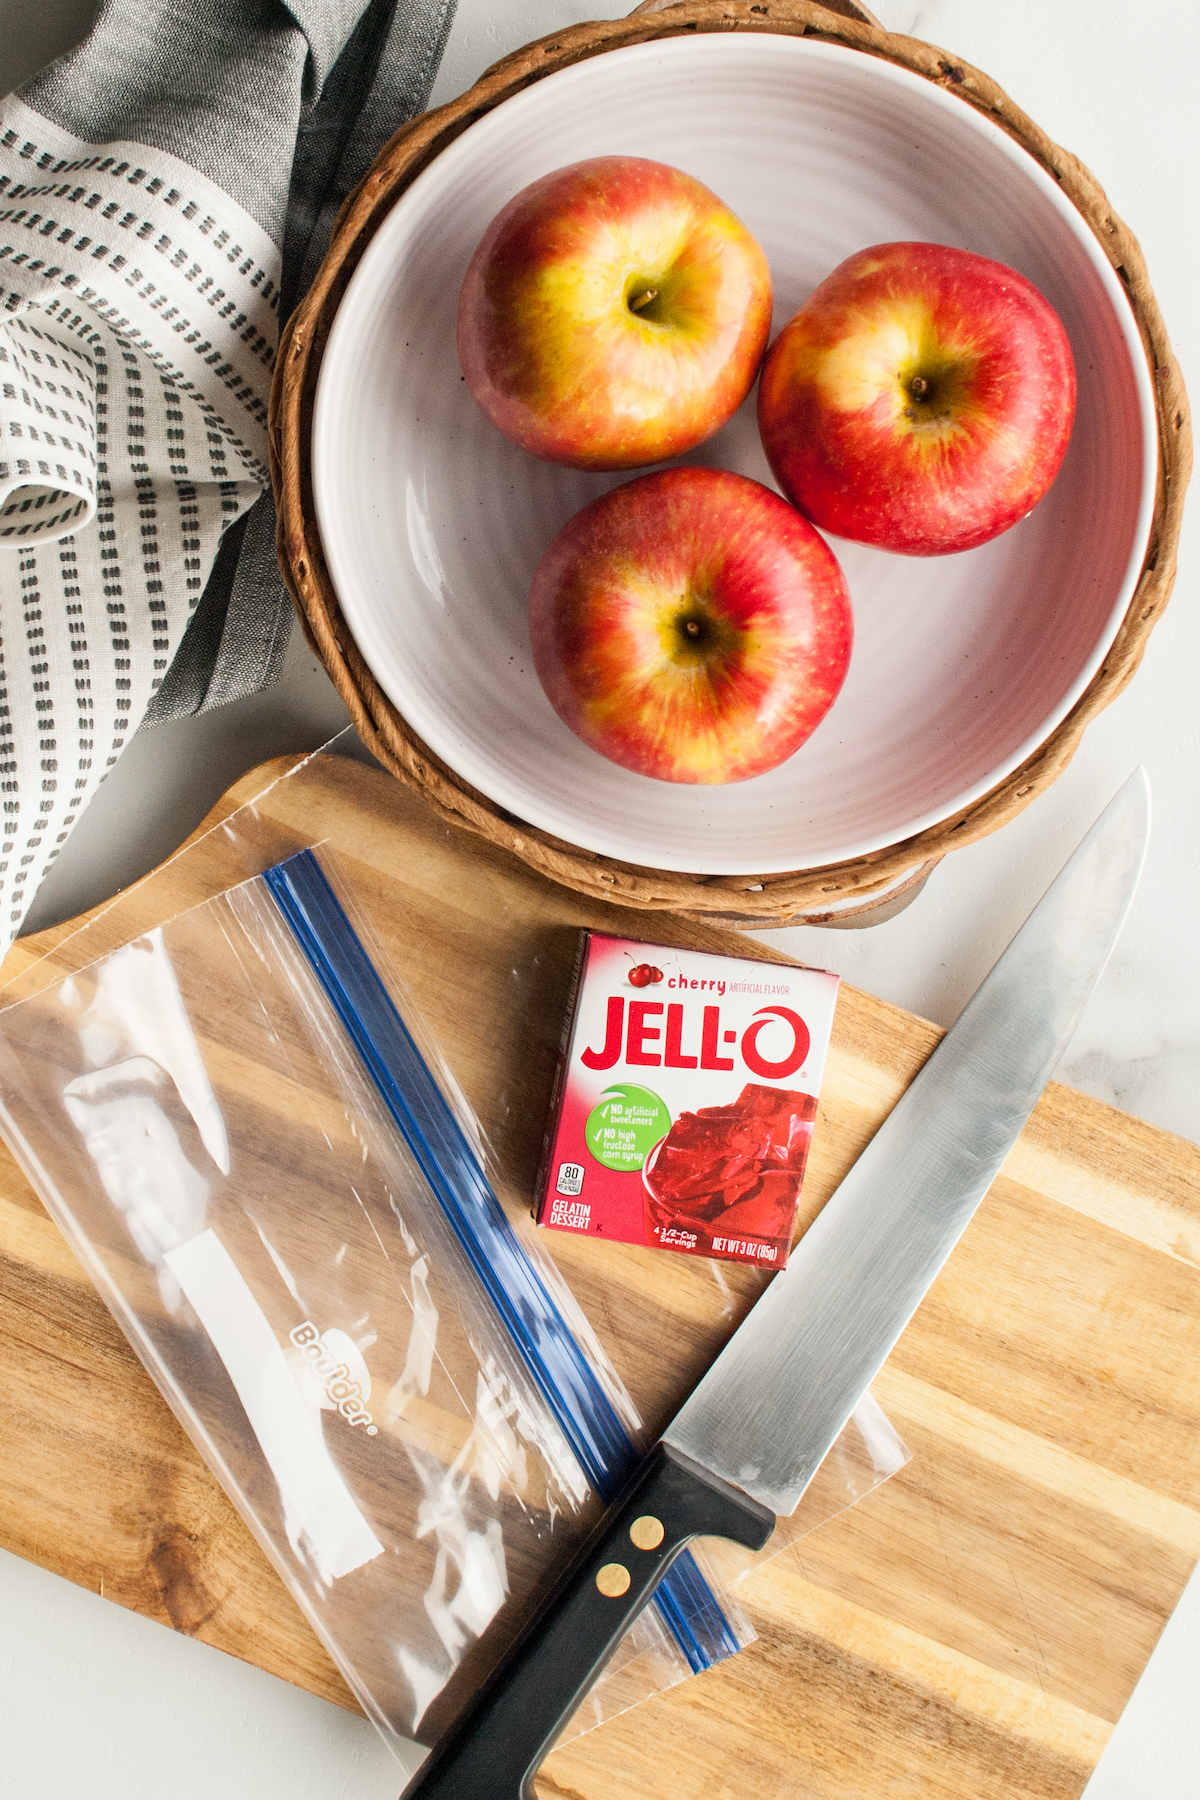 Overhead view of jello apple ingredients (3 apples, 1 box of jello powder) sitting next to a knife, ziploc bag, and a cutting board.